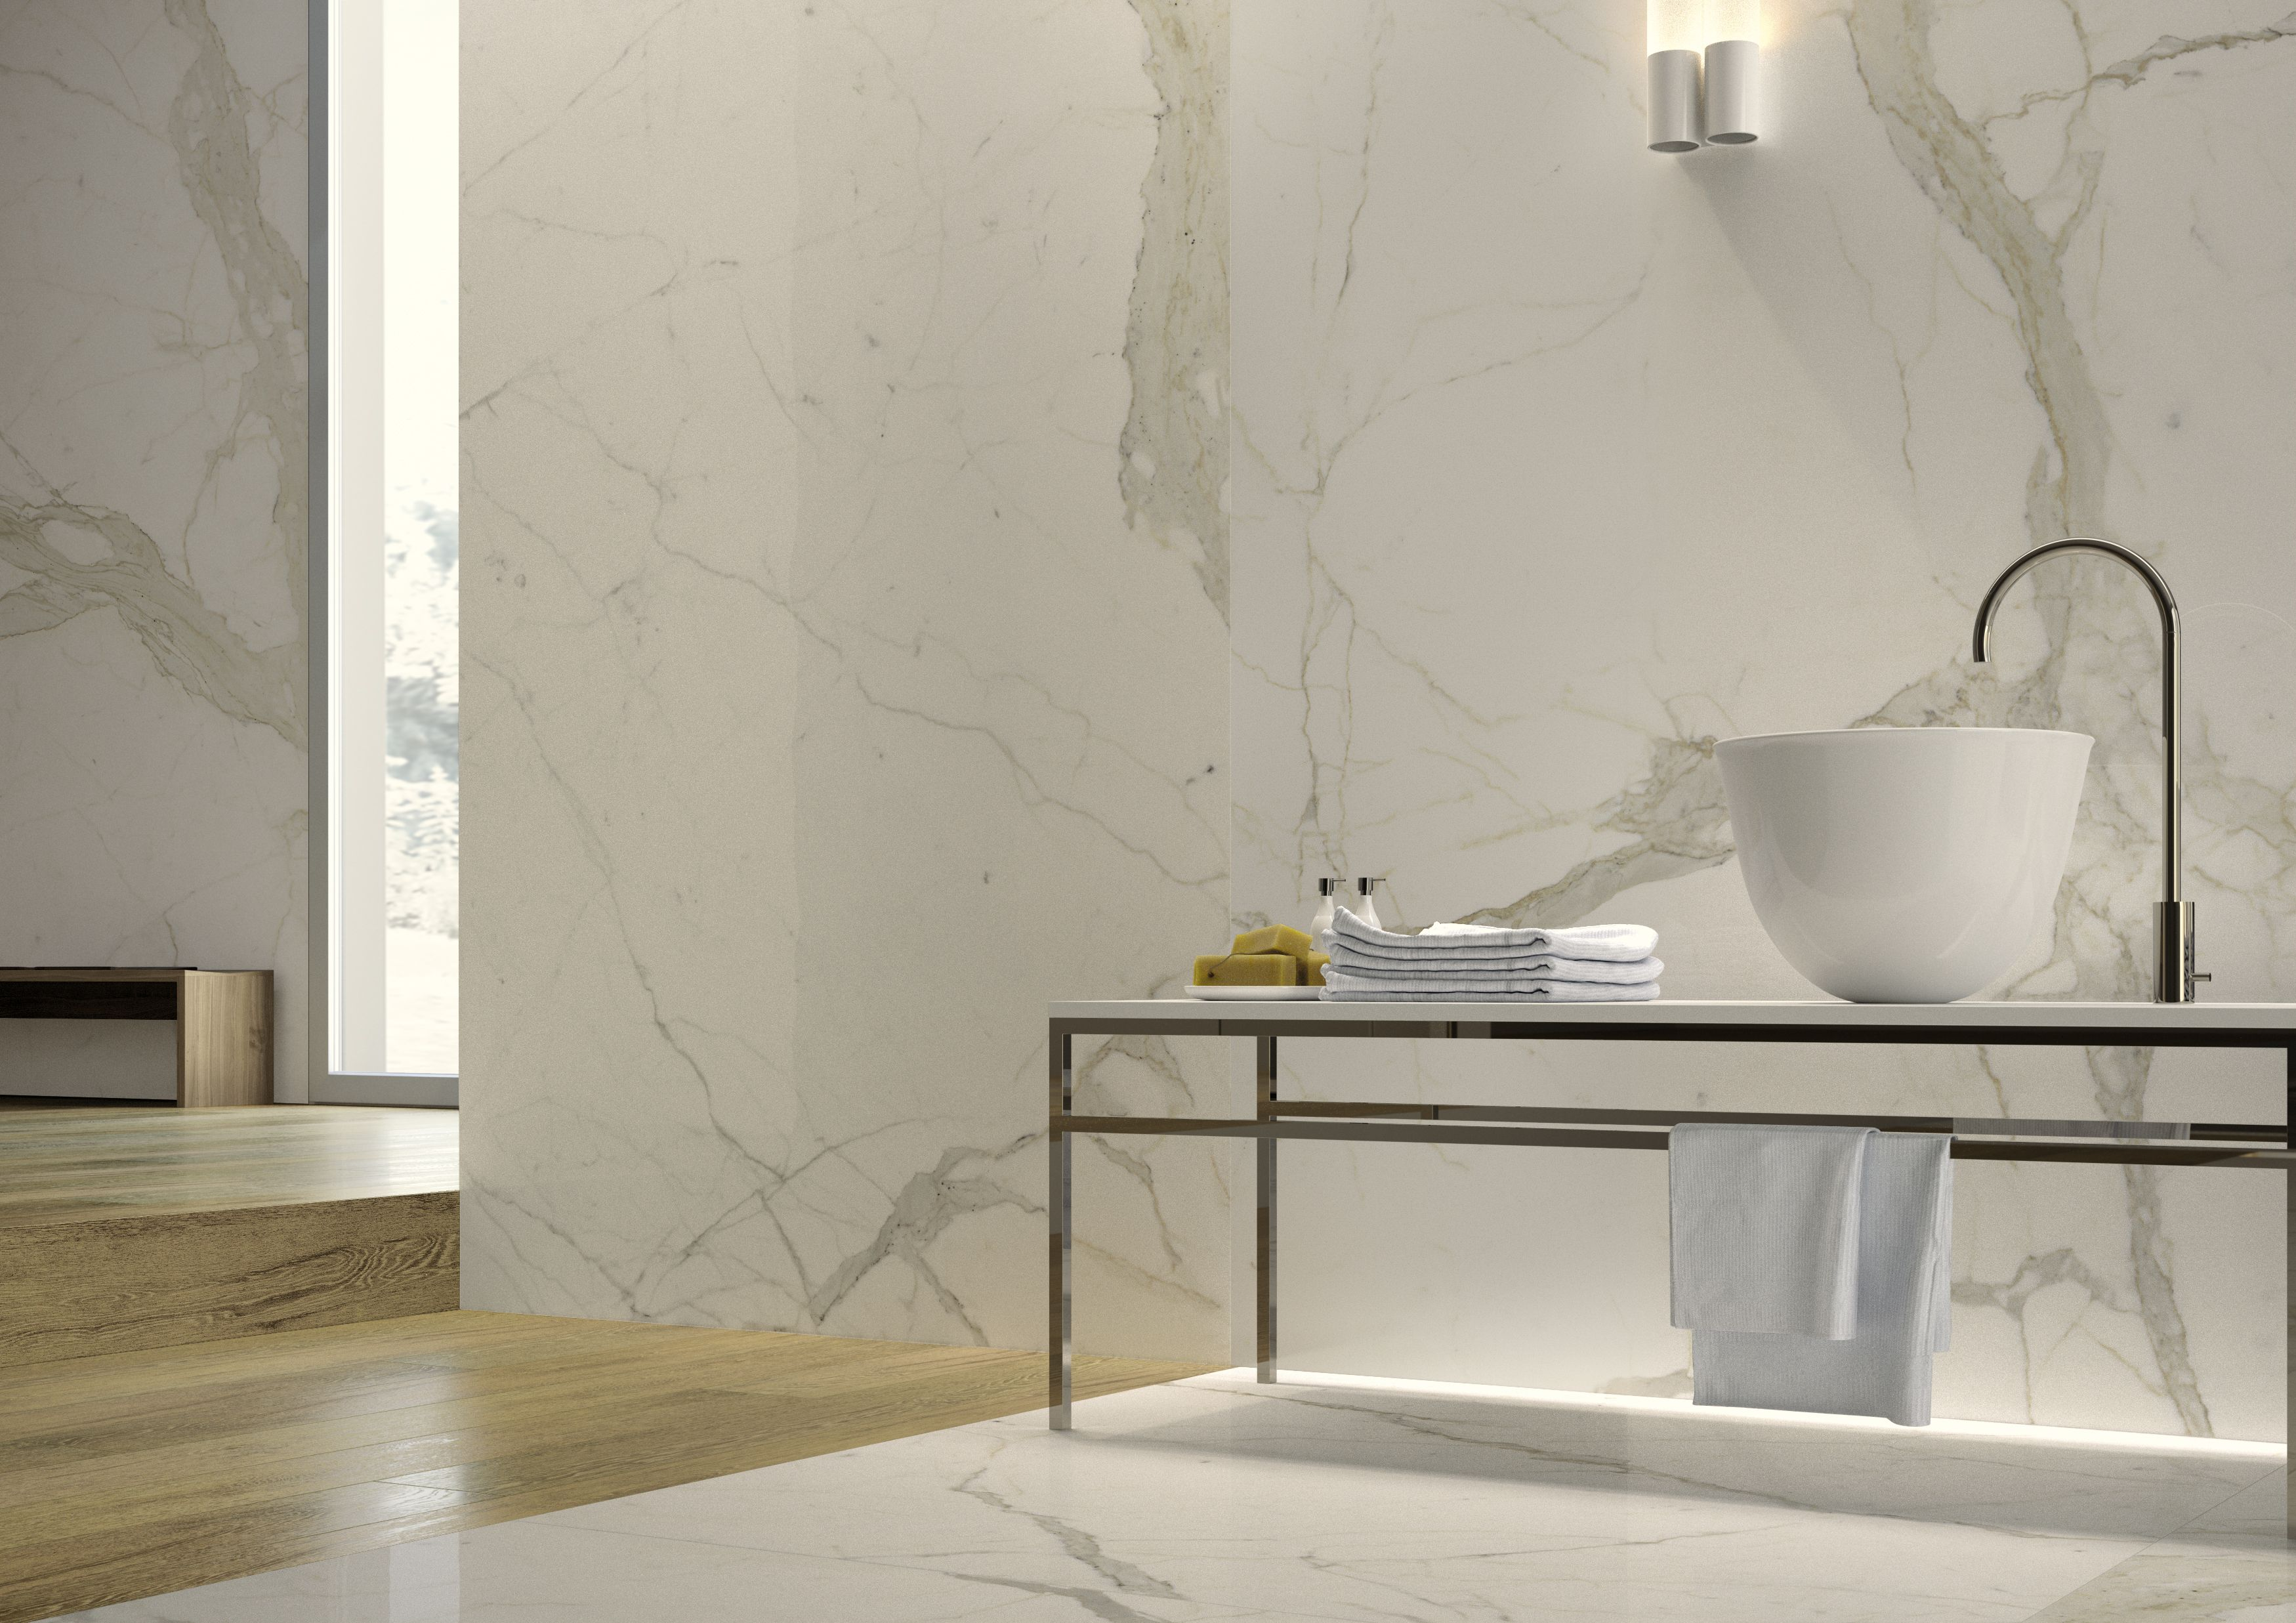 Porcelain Marble with Gold Accessories Google Search House